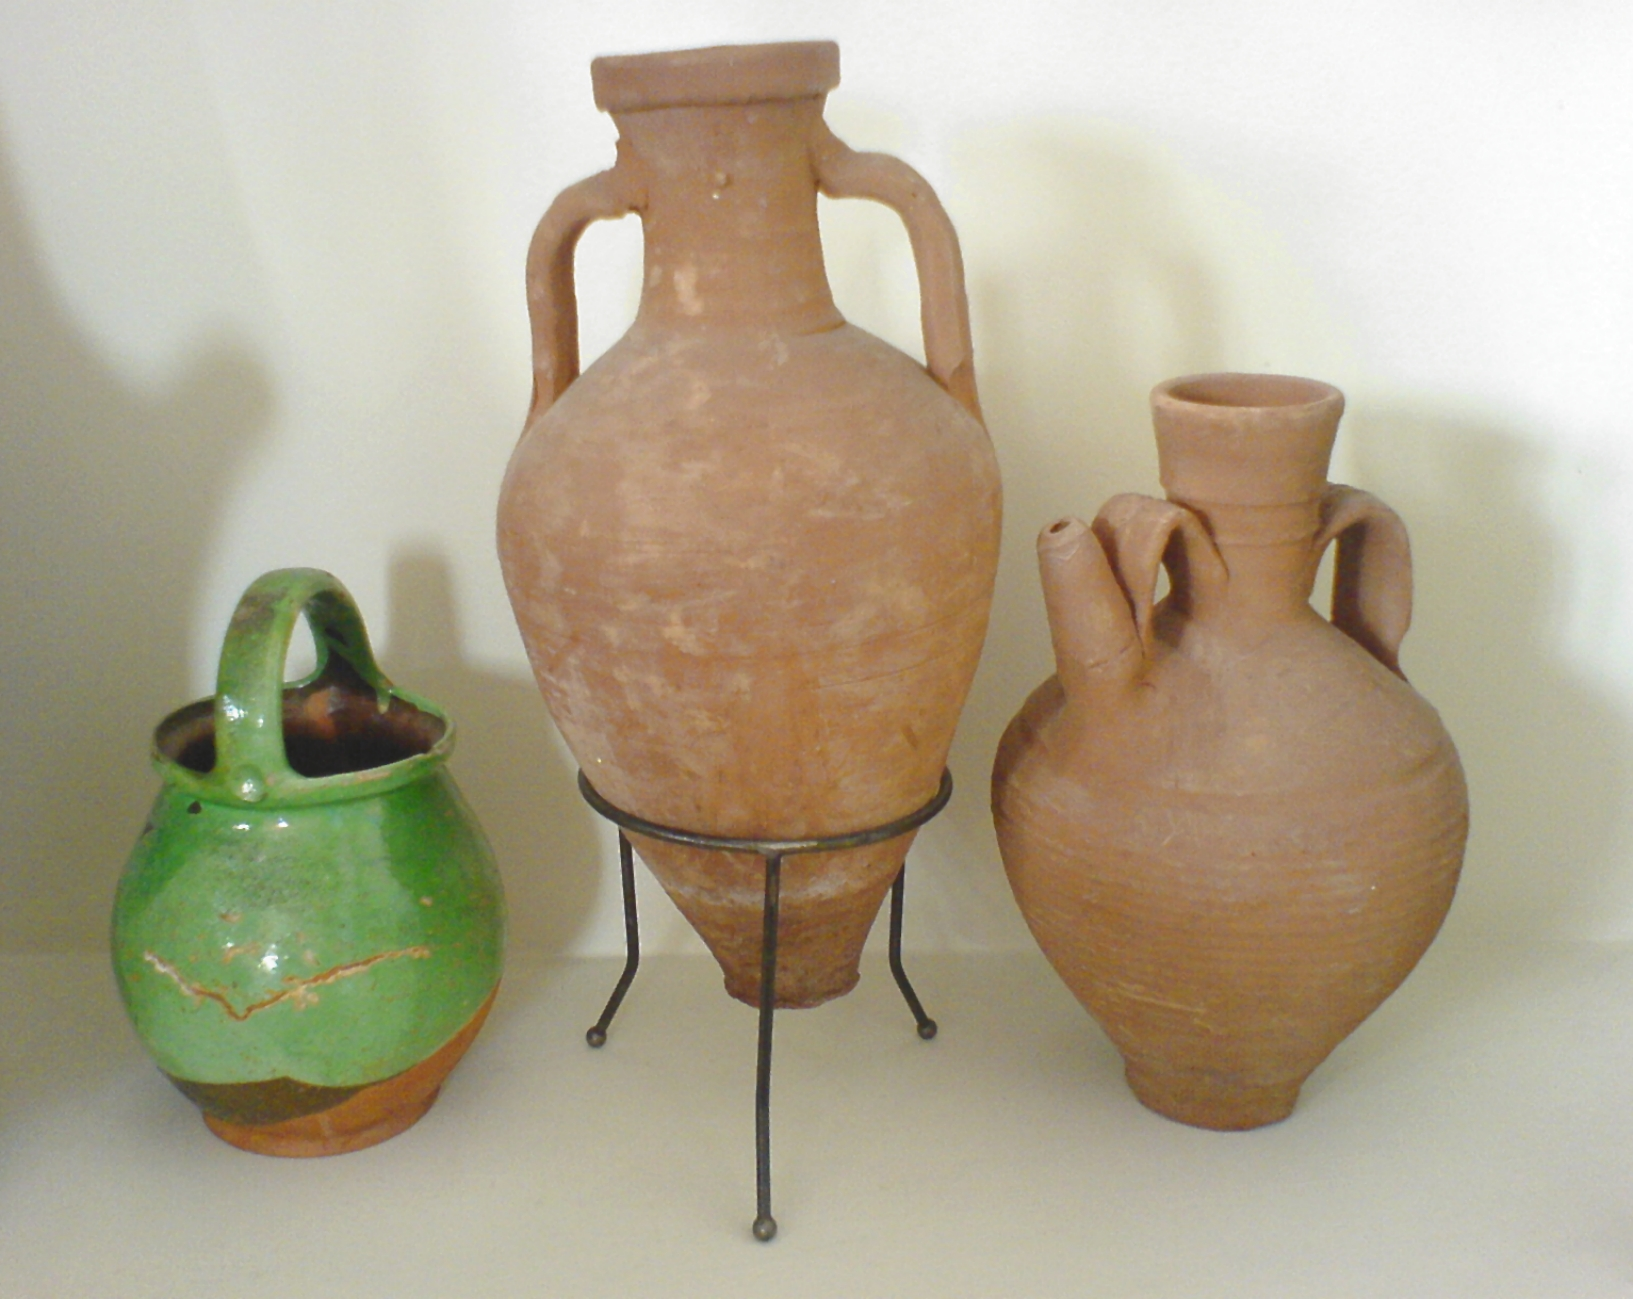 Give your old vases new life